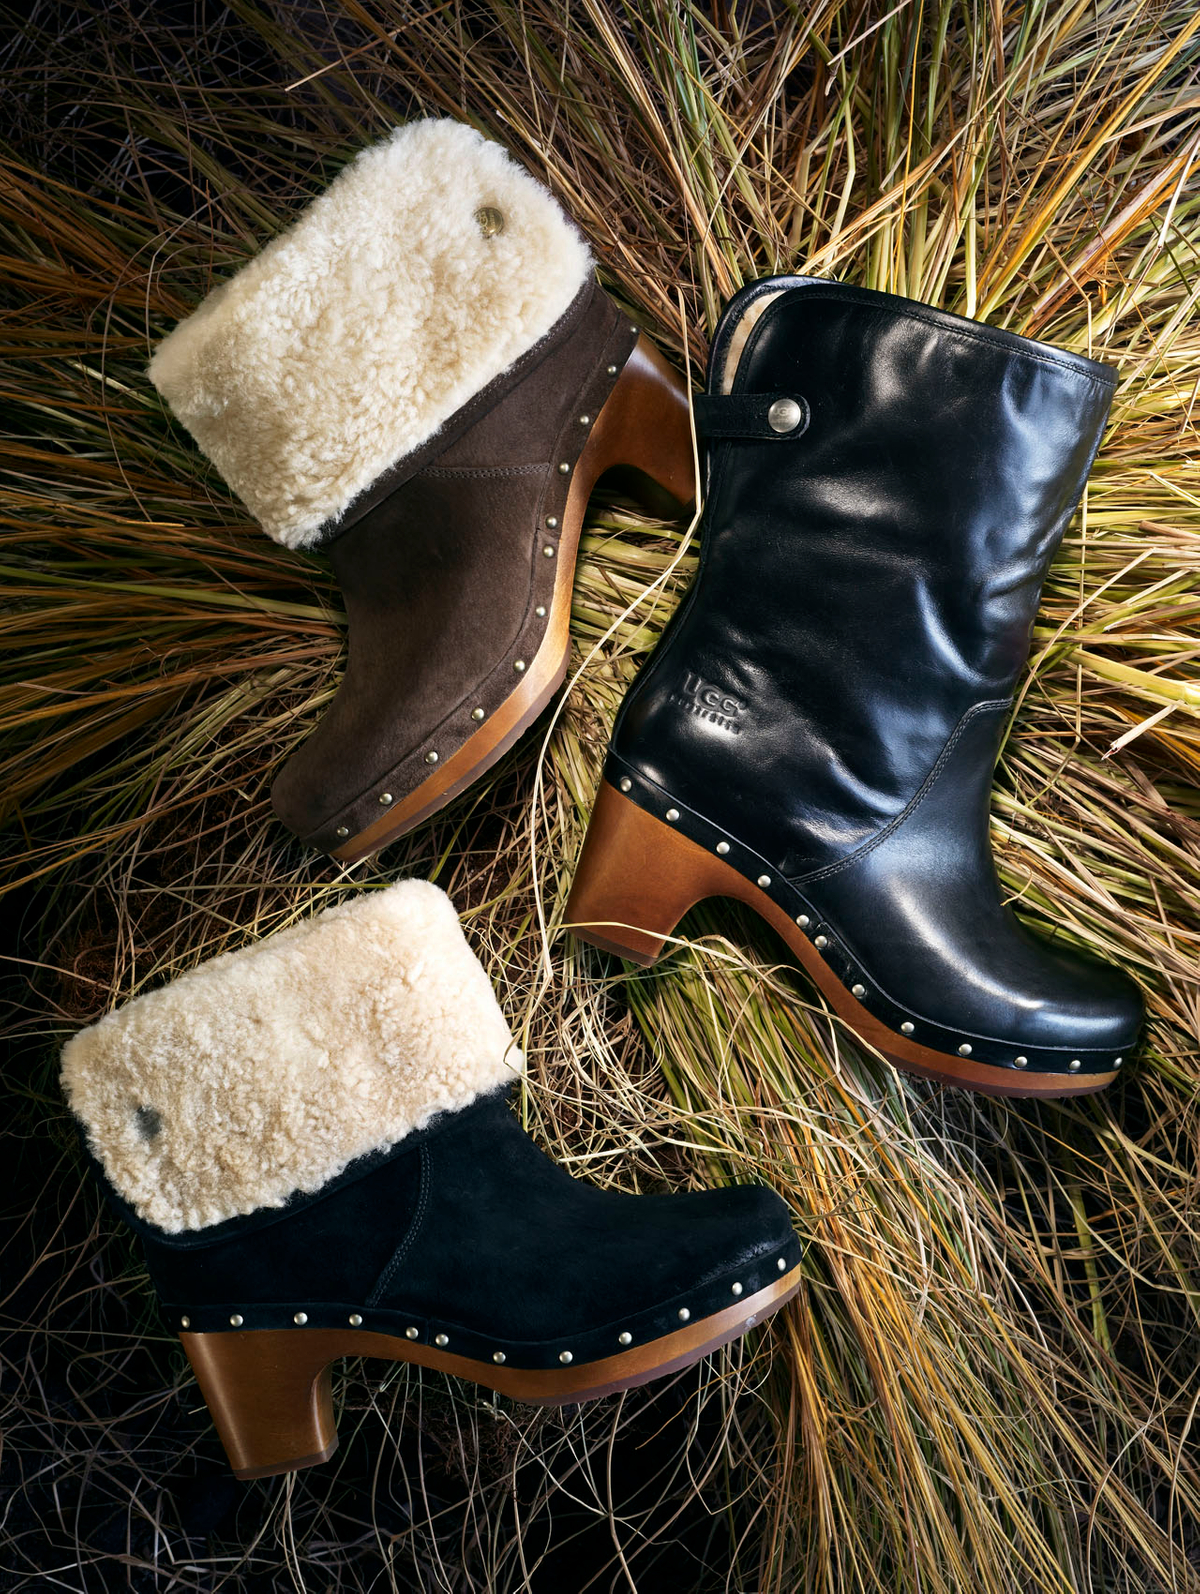 ChristopherWhite_Ugg_Fall_2010_3.jpg